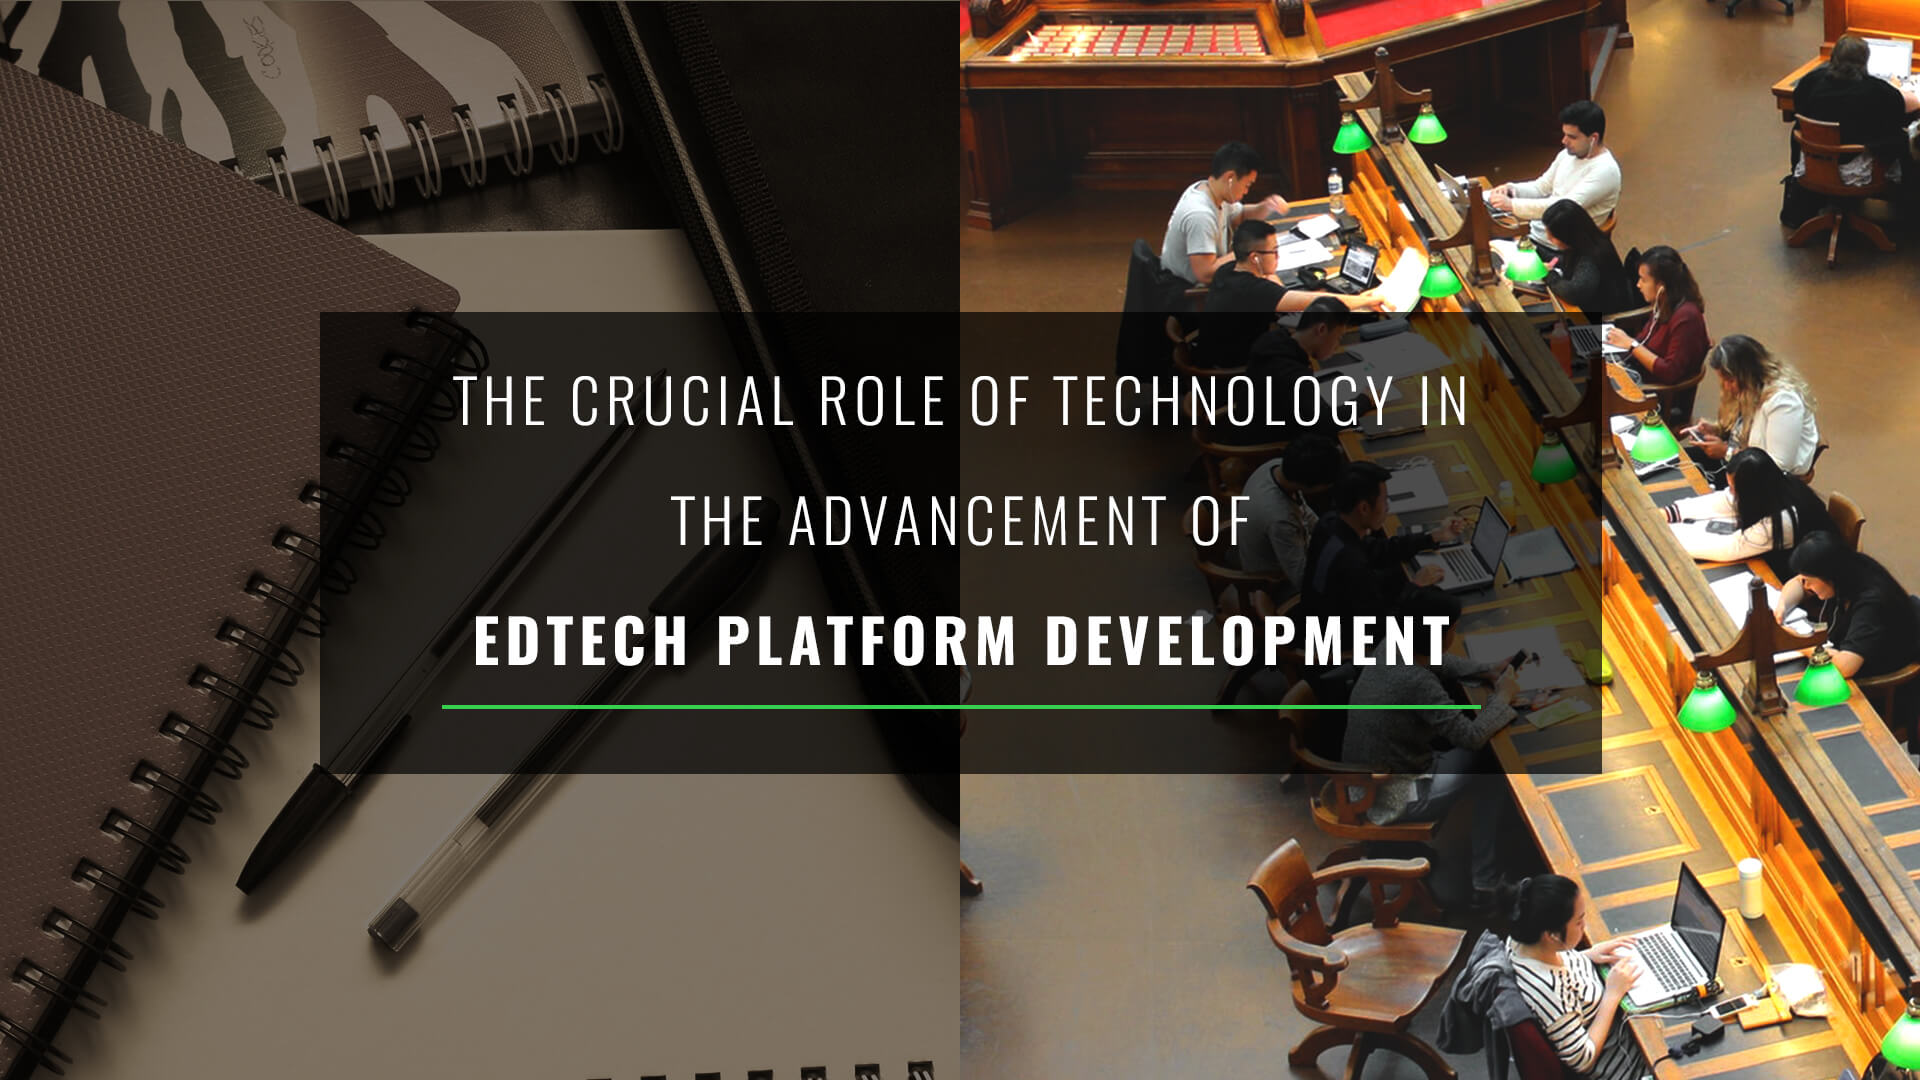 edtech platform development - Trootech